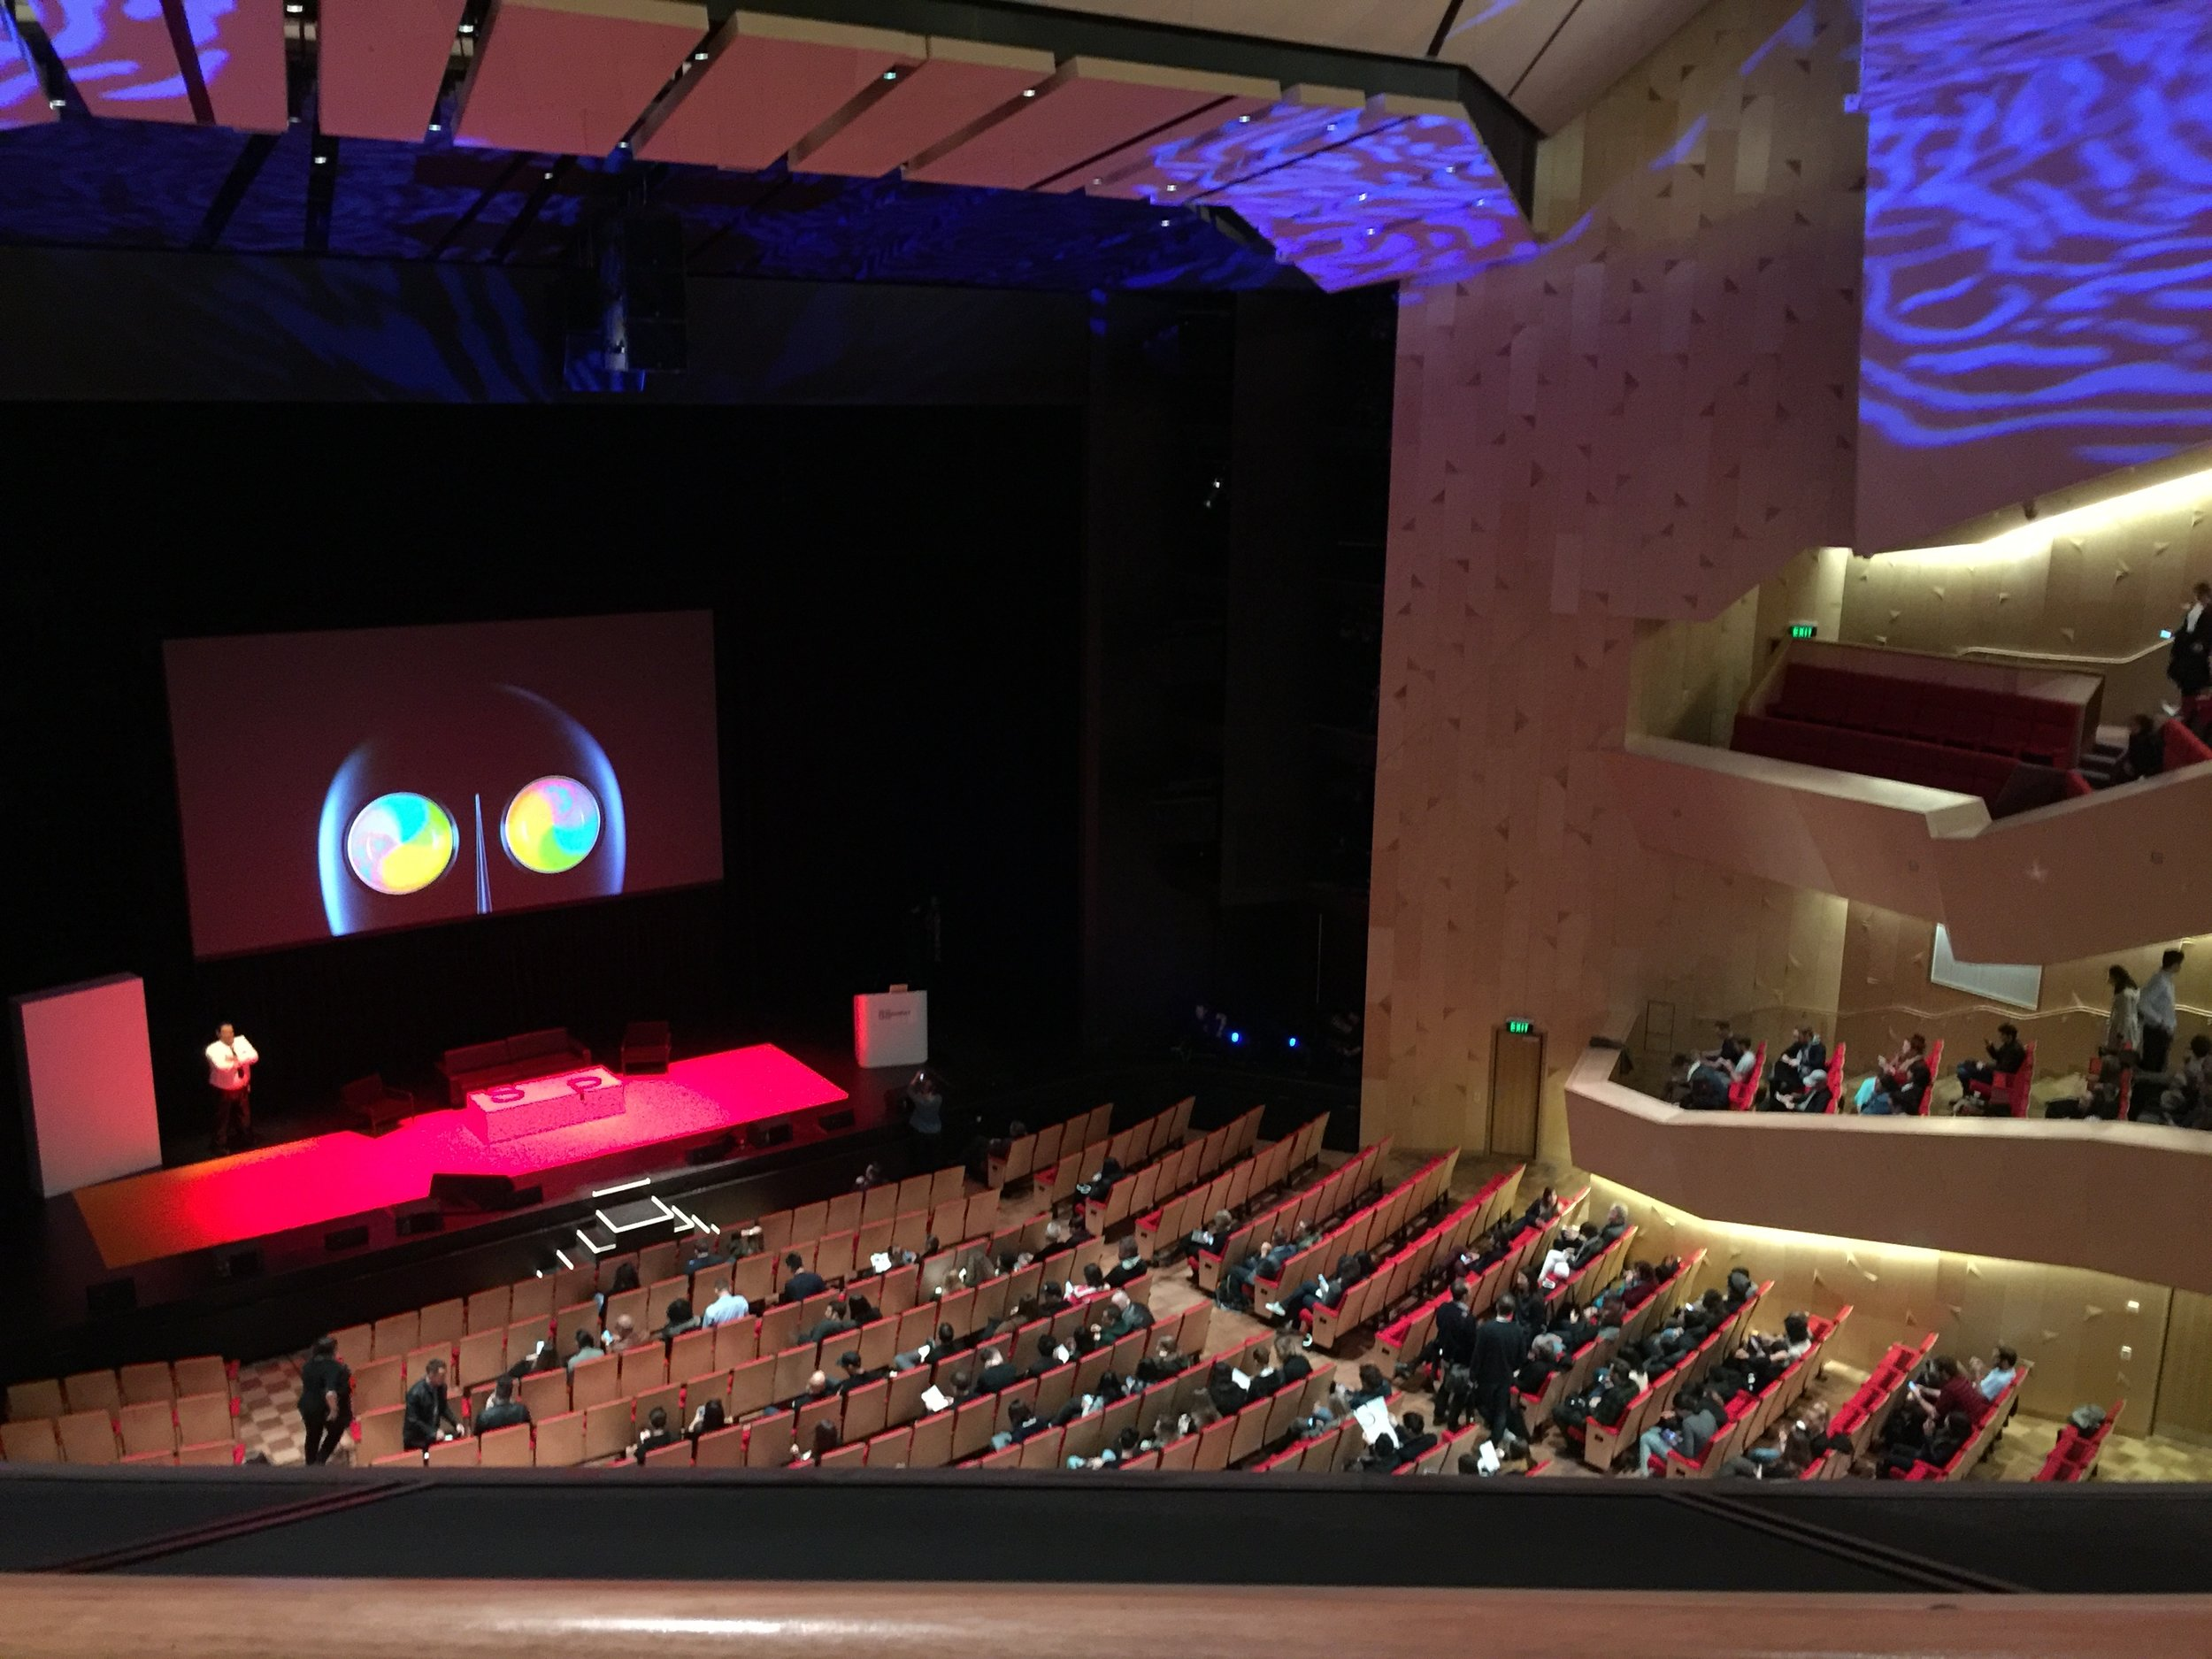 Preparing for information overload at Aotea Centre. Photo Credit: Holly Melville.